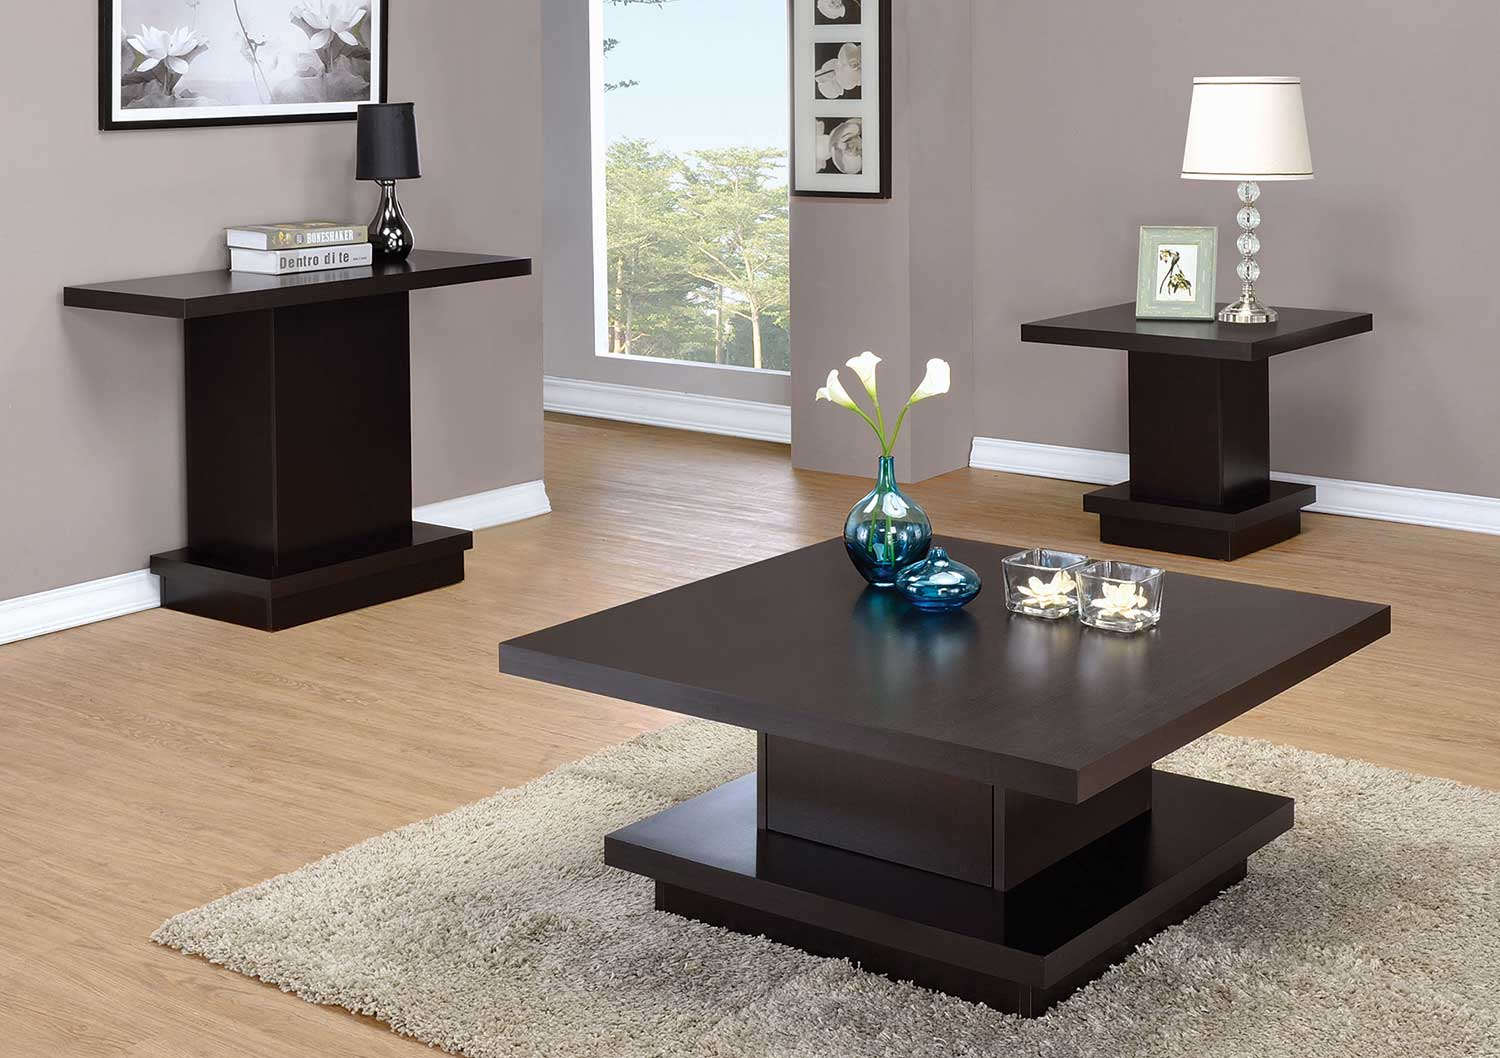 Coaster 705168 Occasional/Coffee Table Set - Cappuccino : coaster coffee table set - pezcame.com